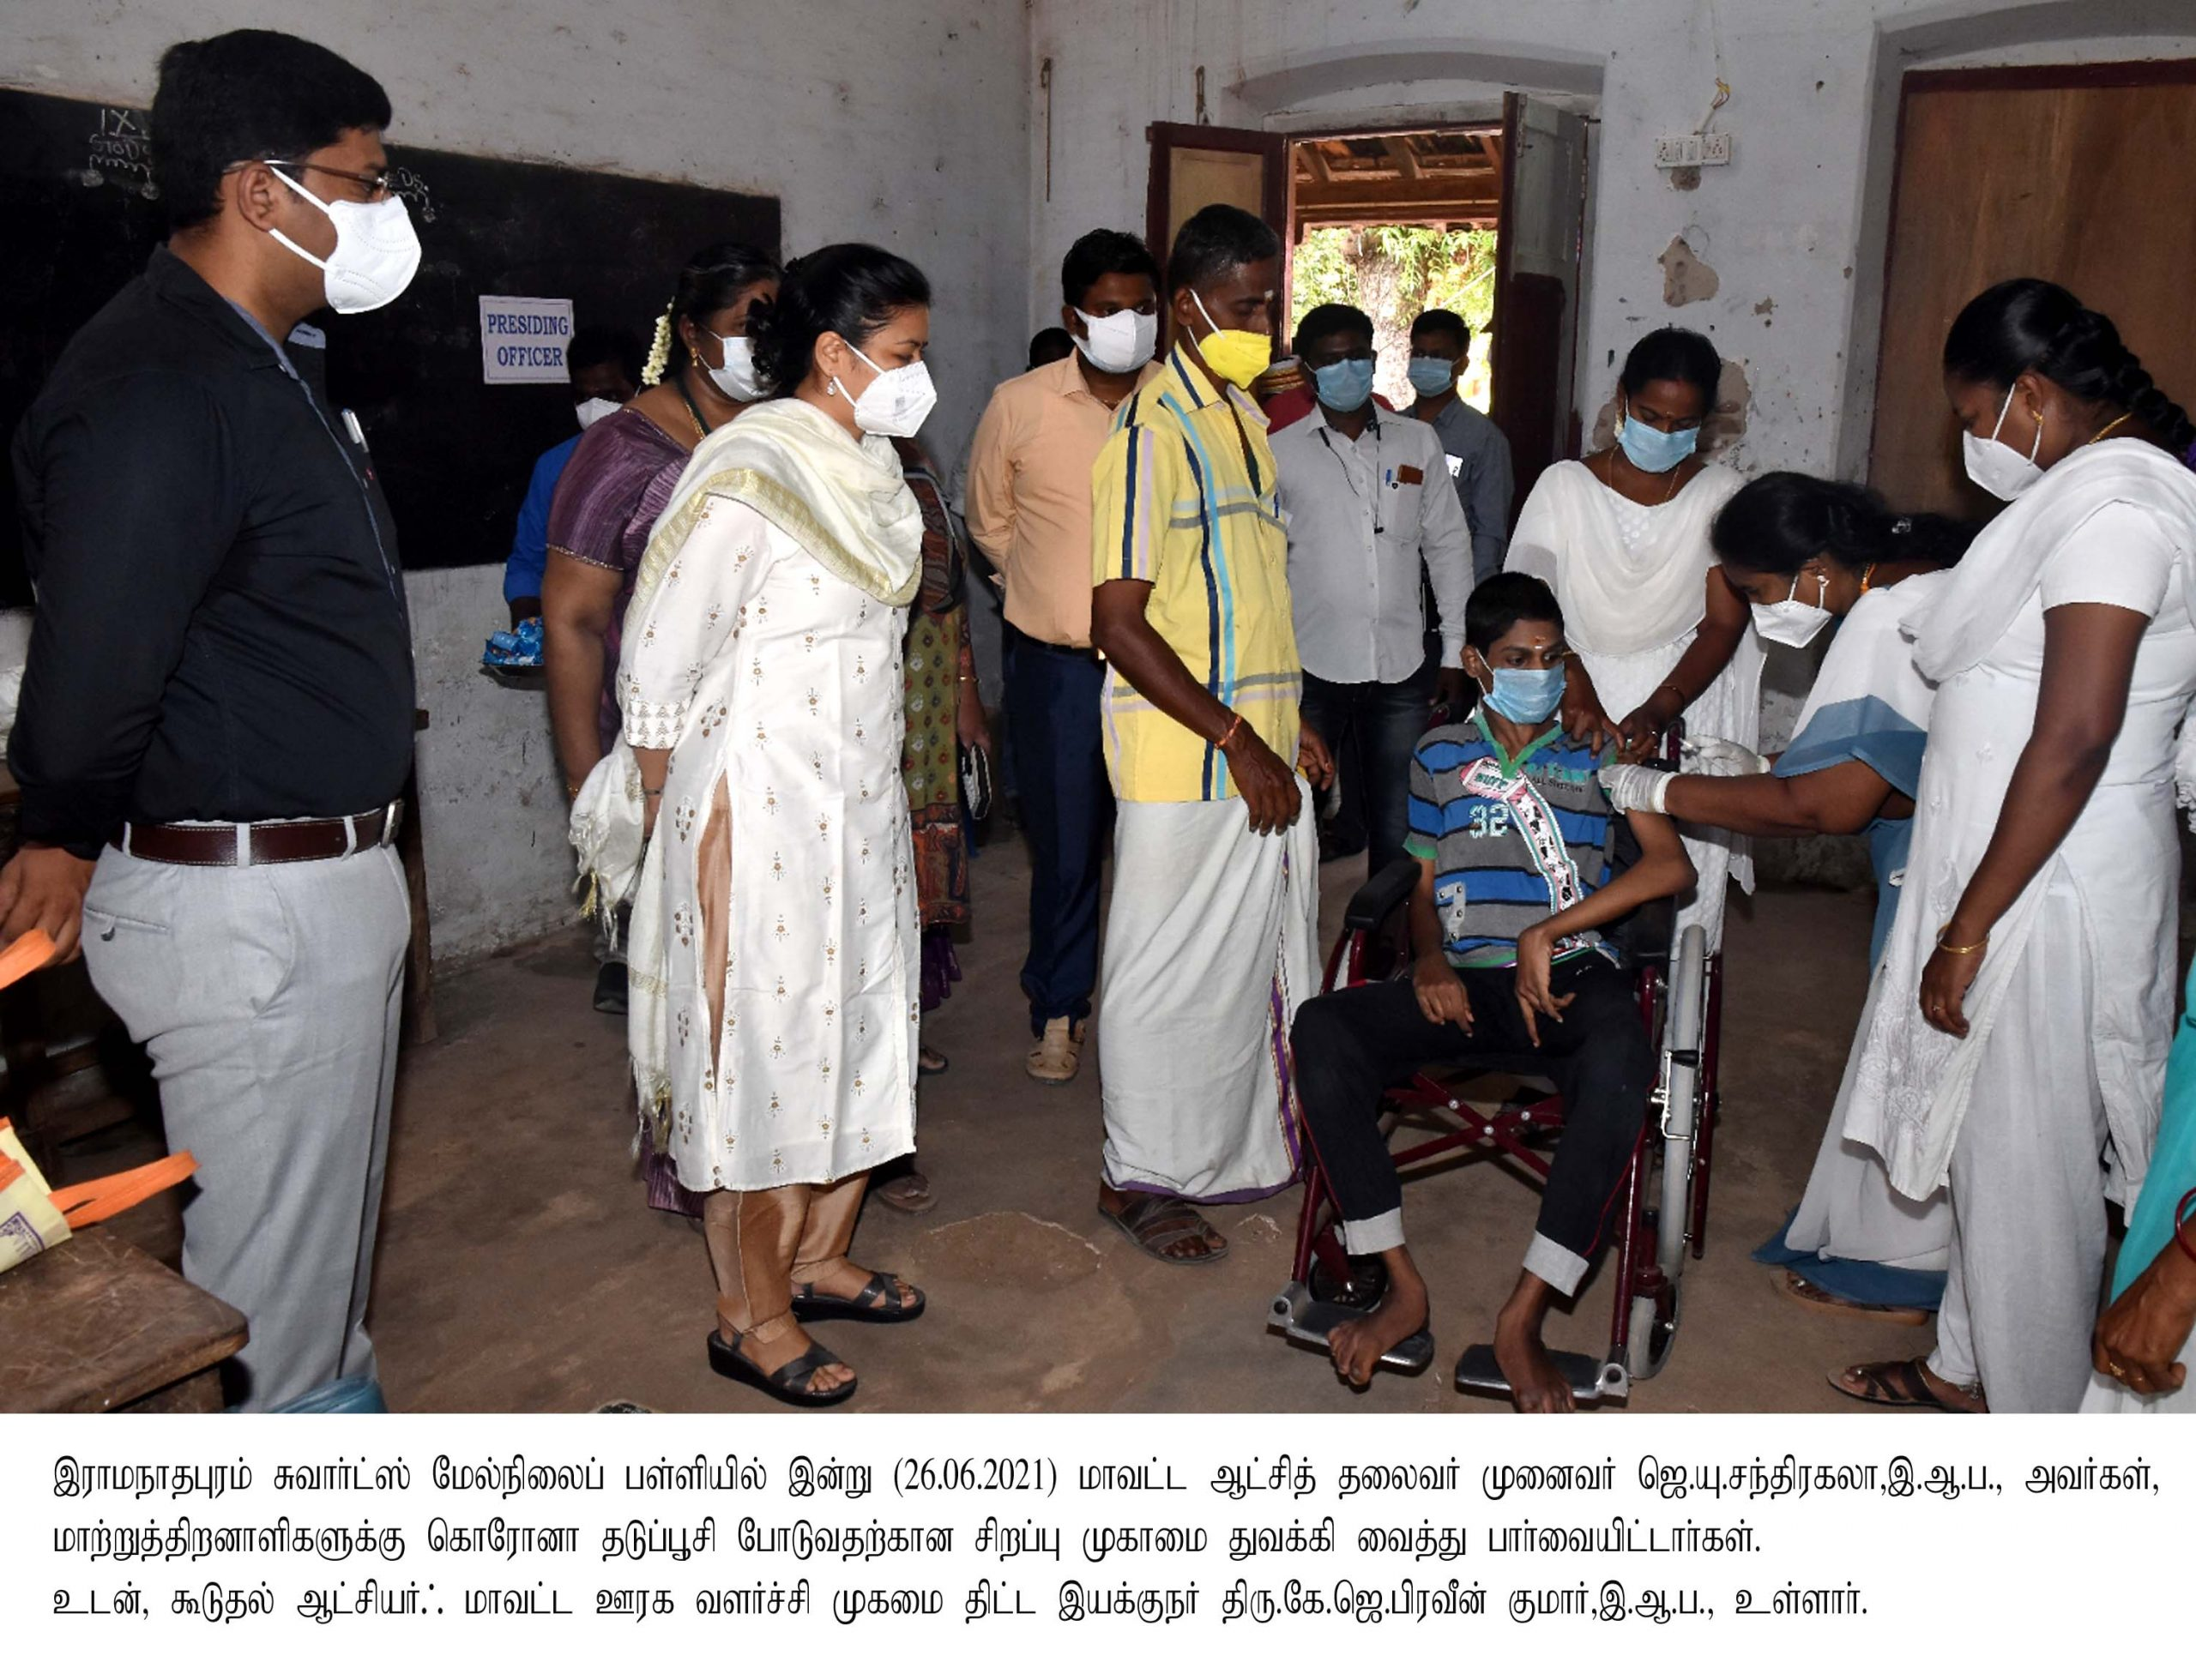 37_DIFFERENTLY ABLED WELFARE VACCINATION SPECIAL CAMP_26/06/2021